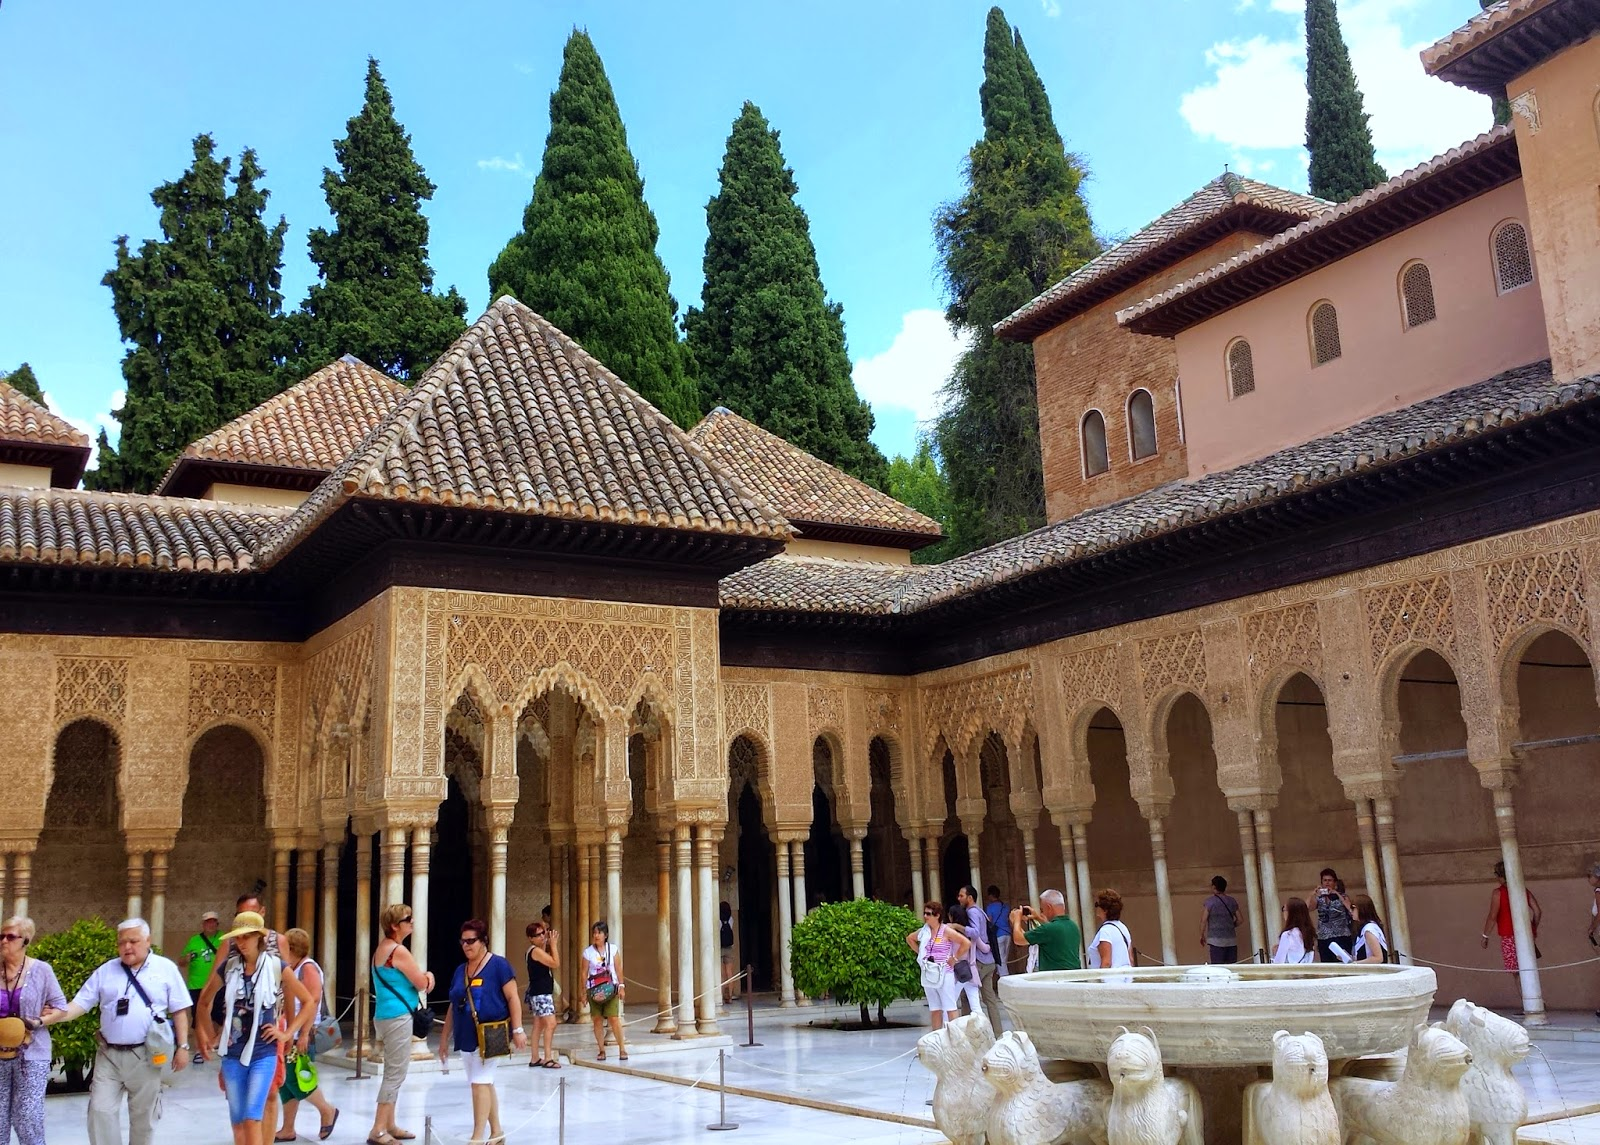 Patio de los Leones at The Alhambra  |  Postcard from Andalucía: Granada and La Alhambra on afeathery*nest  |  http://afeatherynest.com